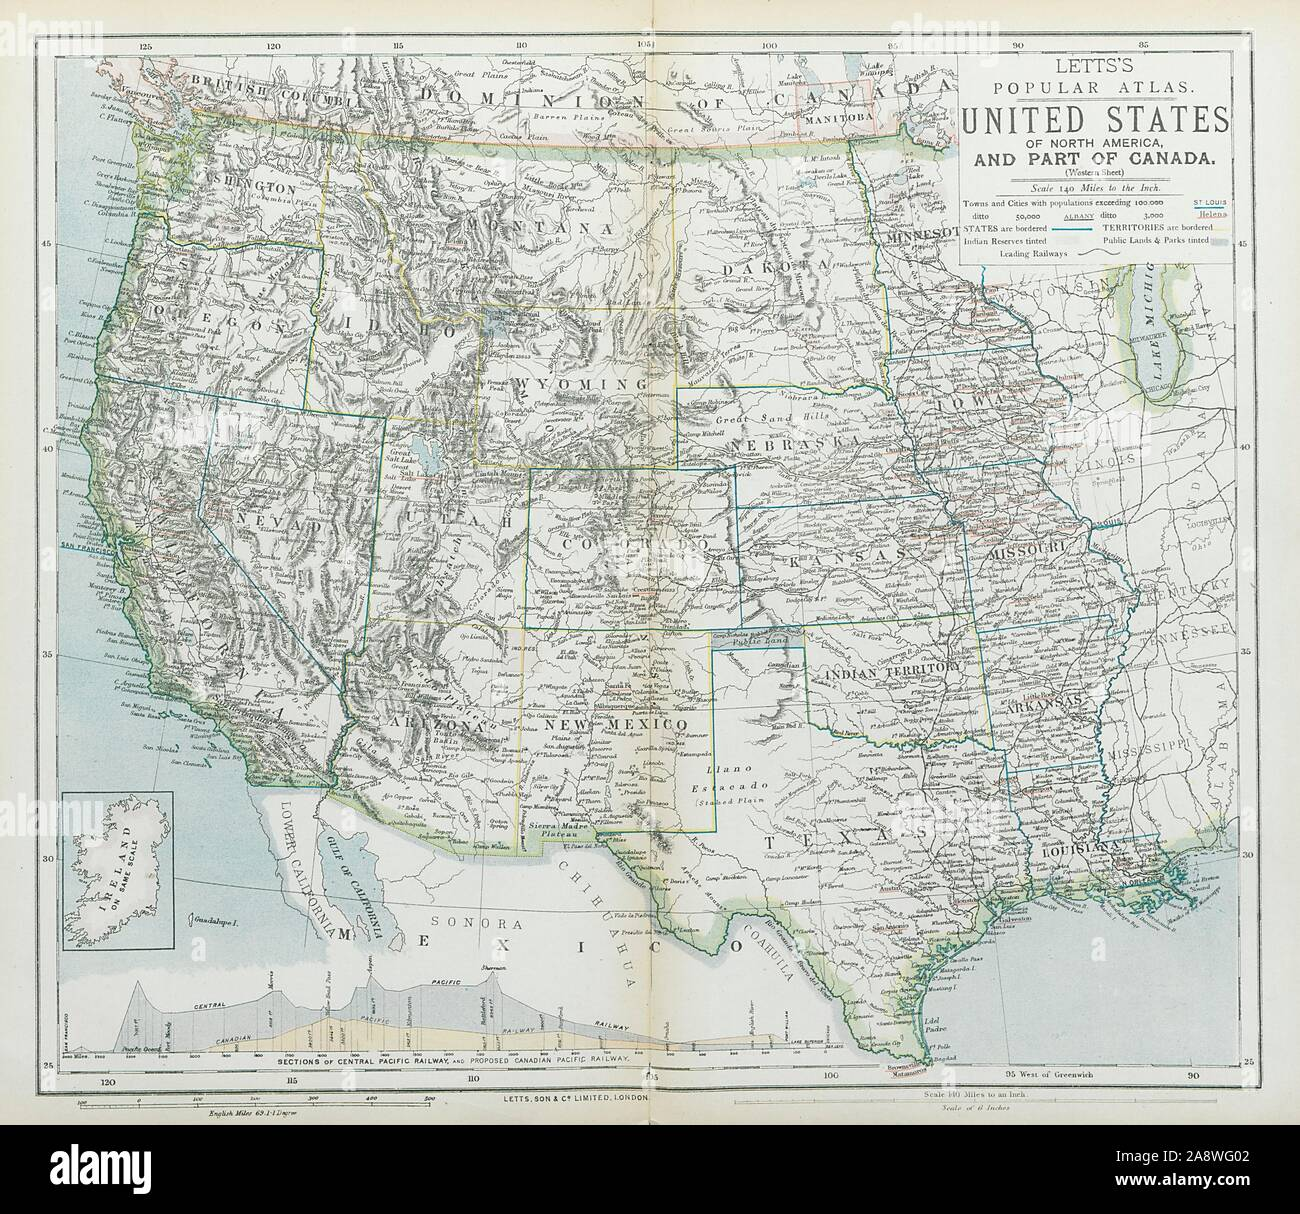 WESTERN USA States & territories Central Pacific Railroad ... on central pacific leviathan, chesapeake and ohio railway map, los angeles and salt lake railroad, union pacific colorado route map, union pacific railroad, chicago rapid transit map, northern pacific railway, western railroads map, modoc northern railroad, denver and rio grande western railroad, uintah railway, central pacific jupiter, comstock lode, canadian national railway map, leland stanford, maine central railroad map, sego, utah, michigan central railroad map, jay gould, northern pacific railway map, central pacific train, union pacific system map, northern pacific route map, jersey central railroad map, new york central railroad map, western pacific railroad, golden spike, penn central railroad map, central pacific coast costa rica map, texas central railway map, central illinois map, collis p. huntington, oregon short line railroad, union pacific california map, atchison, topeka and santa fe railway, great western railway of colorado, great northern railway, southern pacific railroad, first transcontinental railroad,